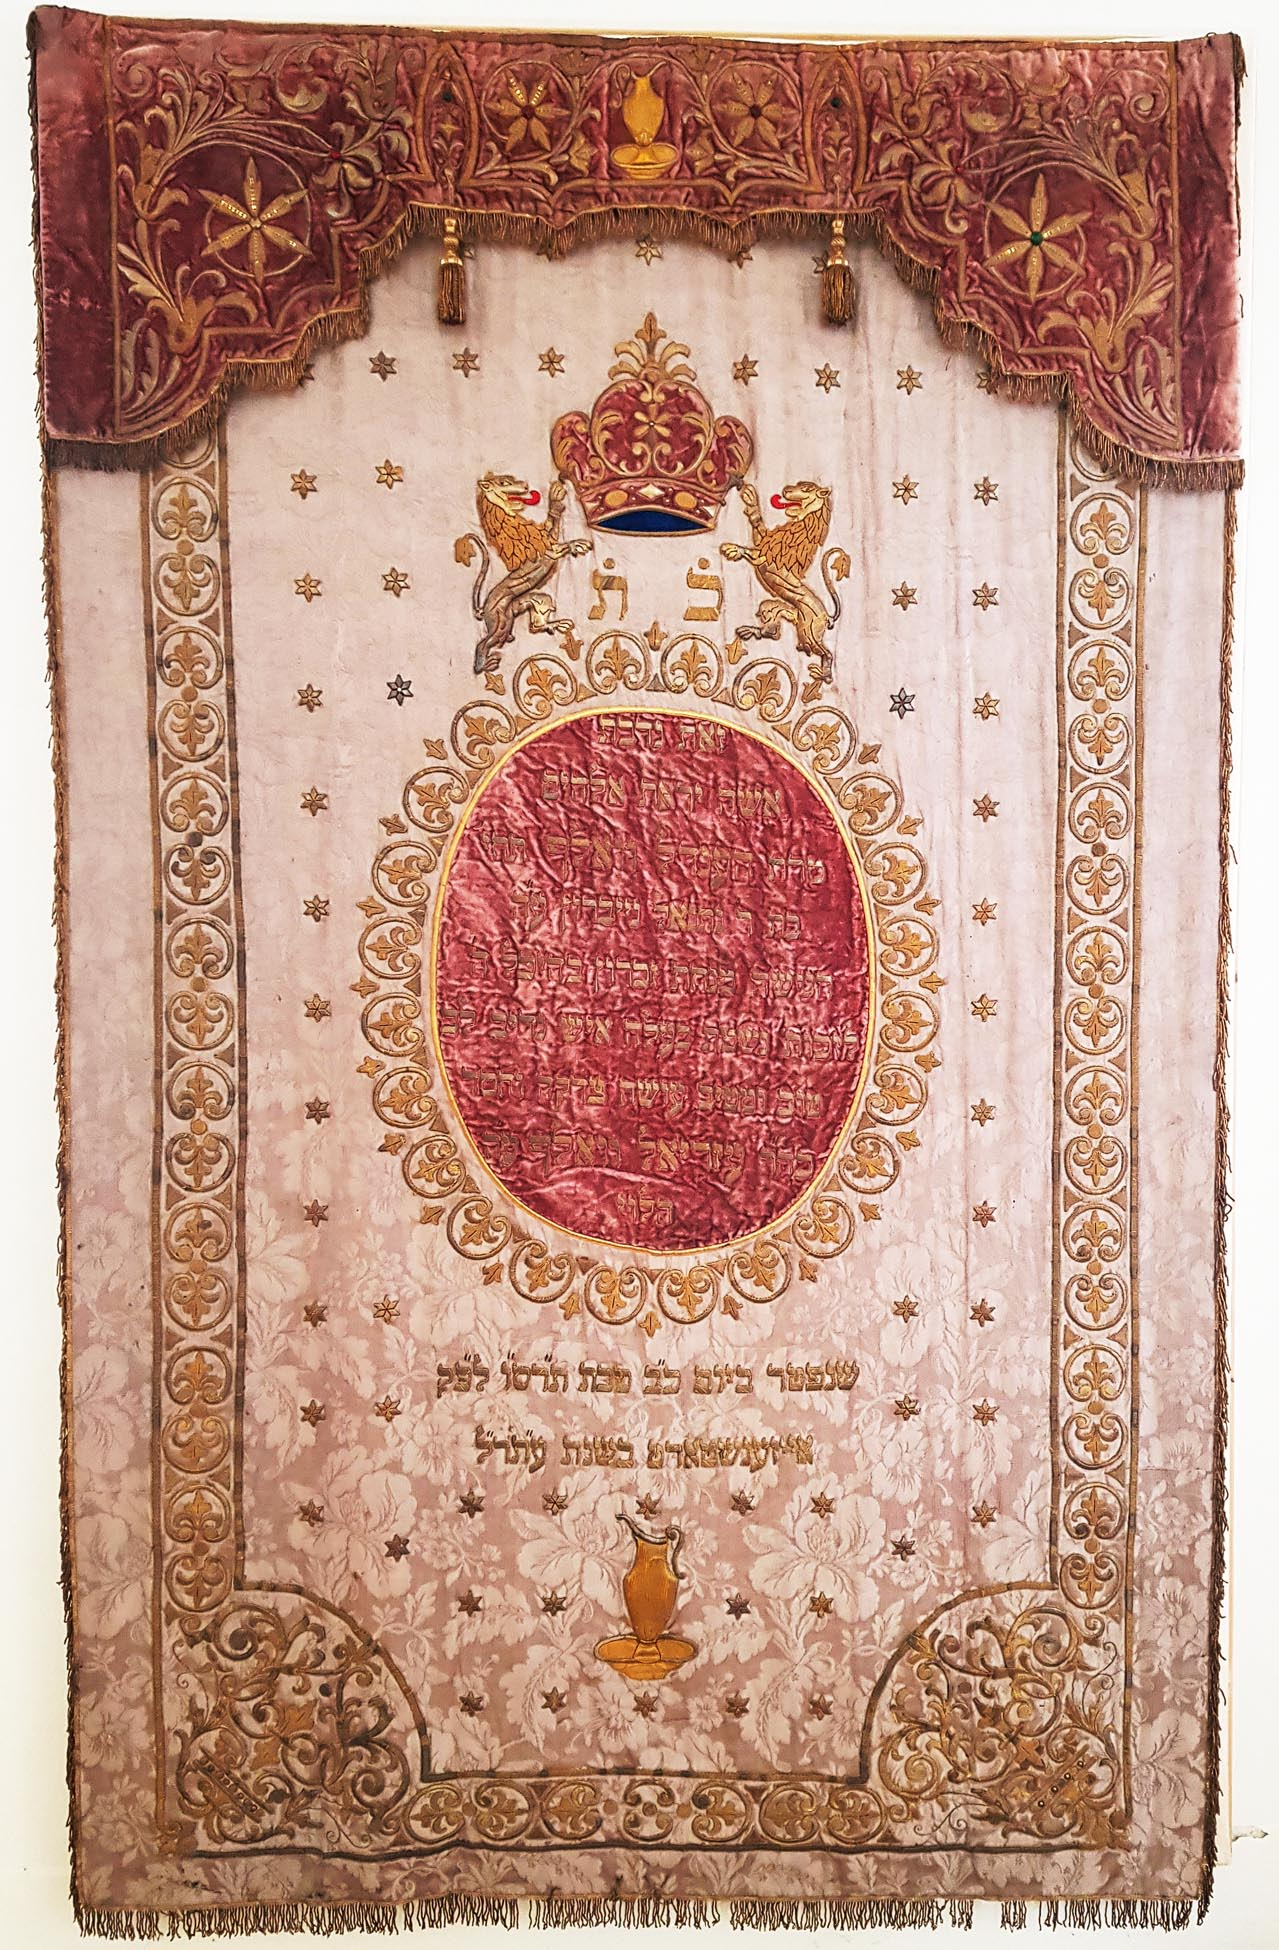 Torah Ark curtain, Eisenstadt 1910, Loaned by the Jewish Museum Vienna